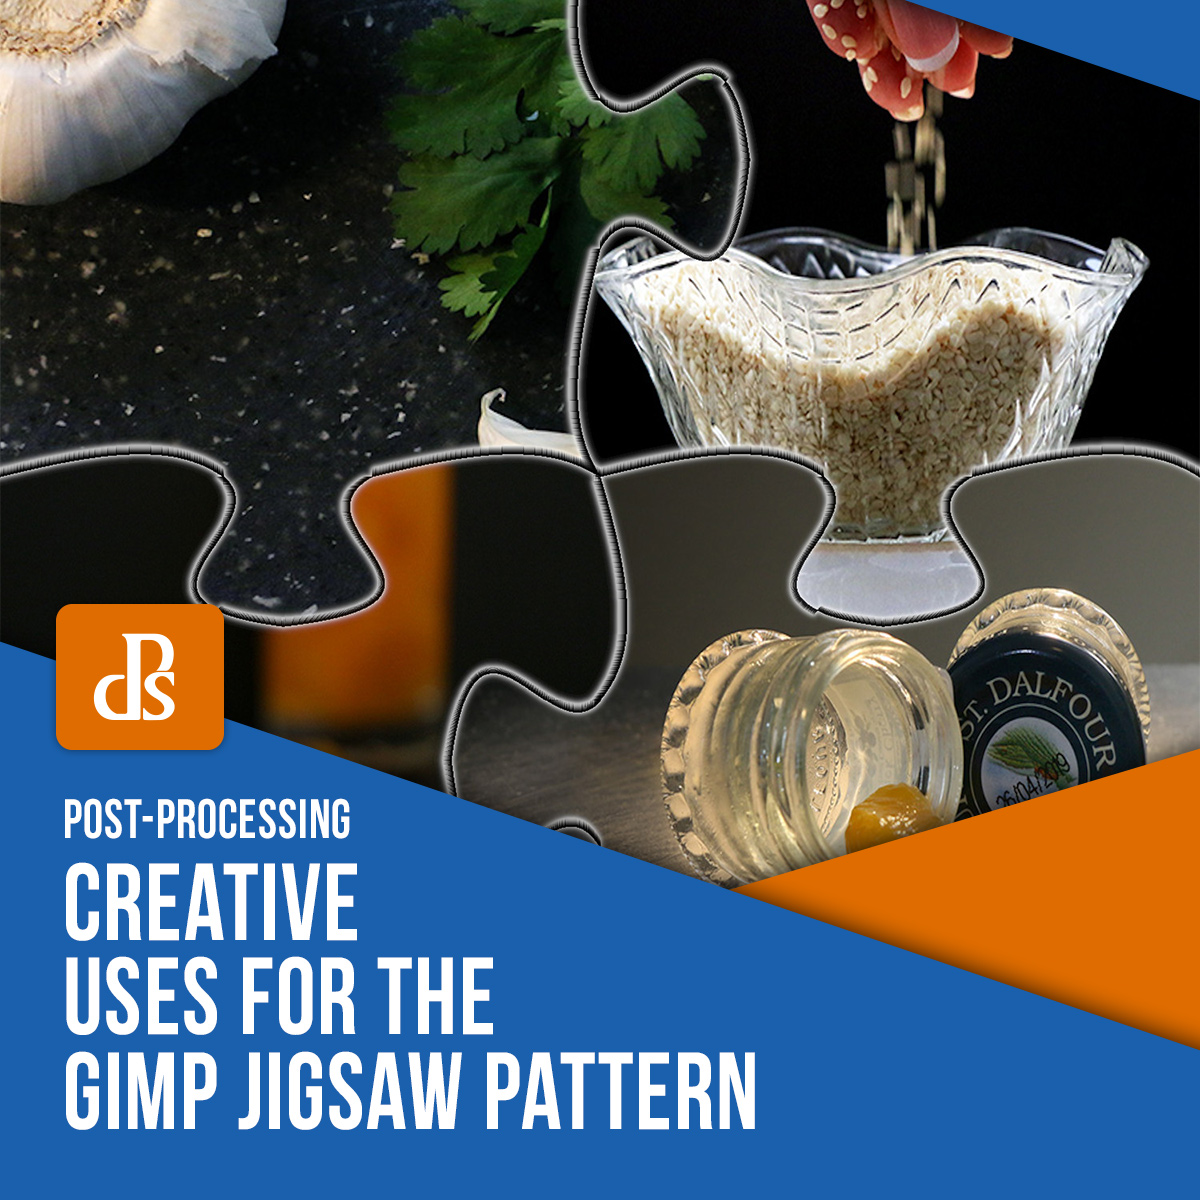 Creative Uses for the GIMP Jigsaw Pattern